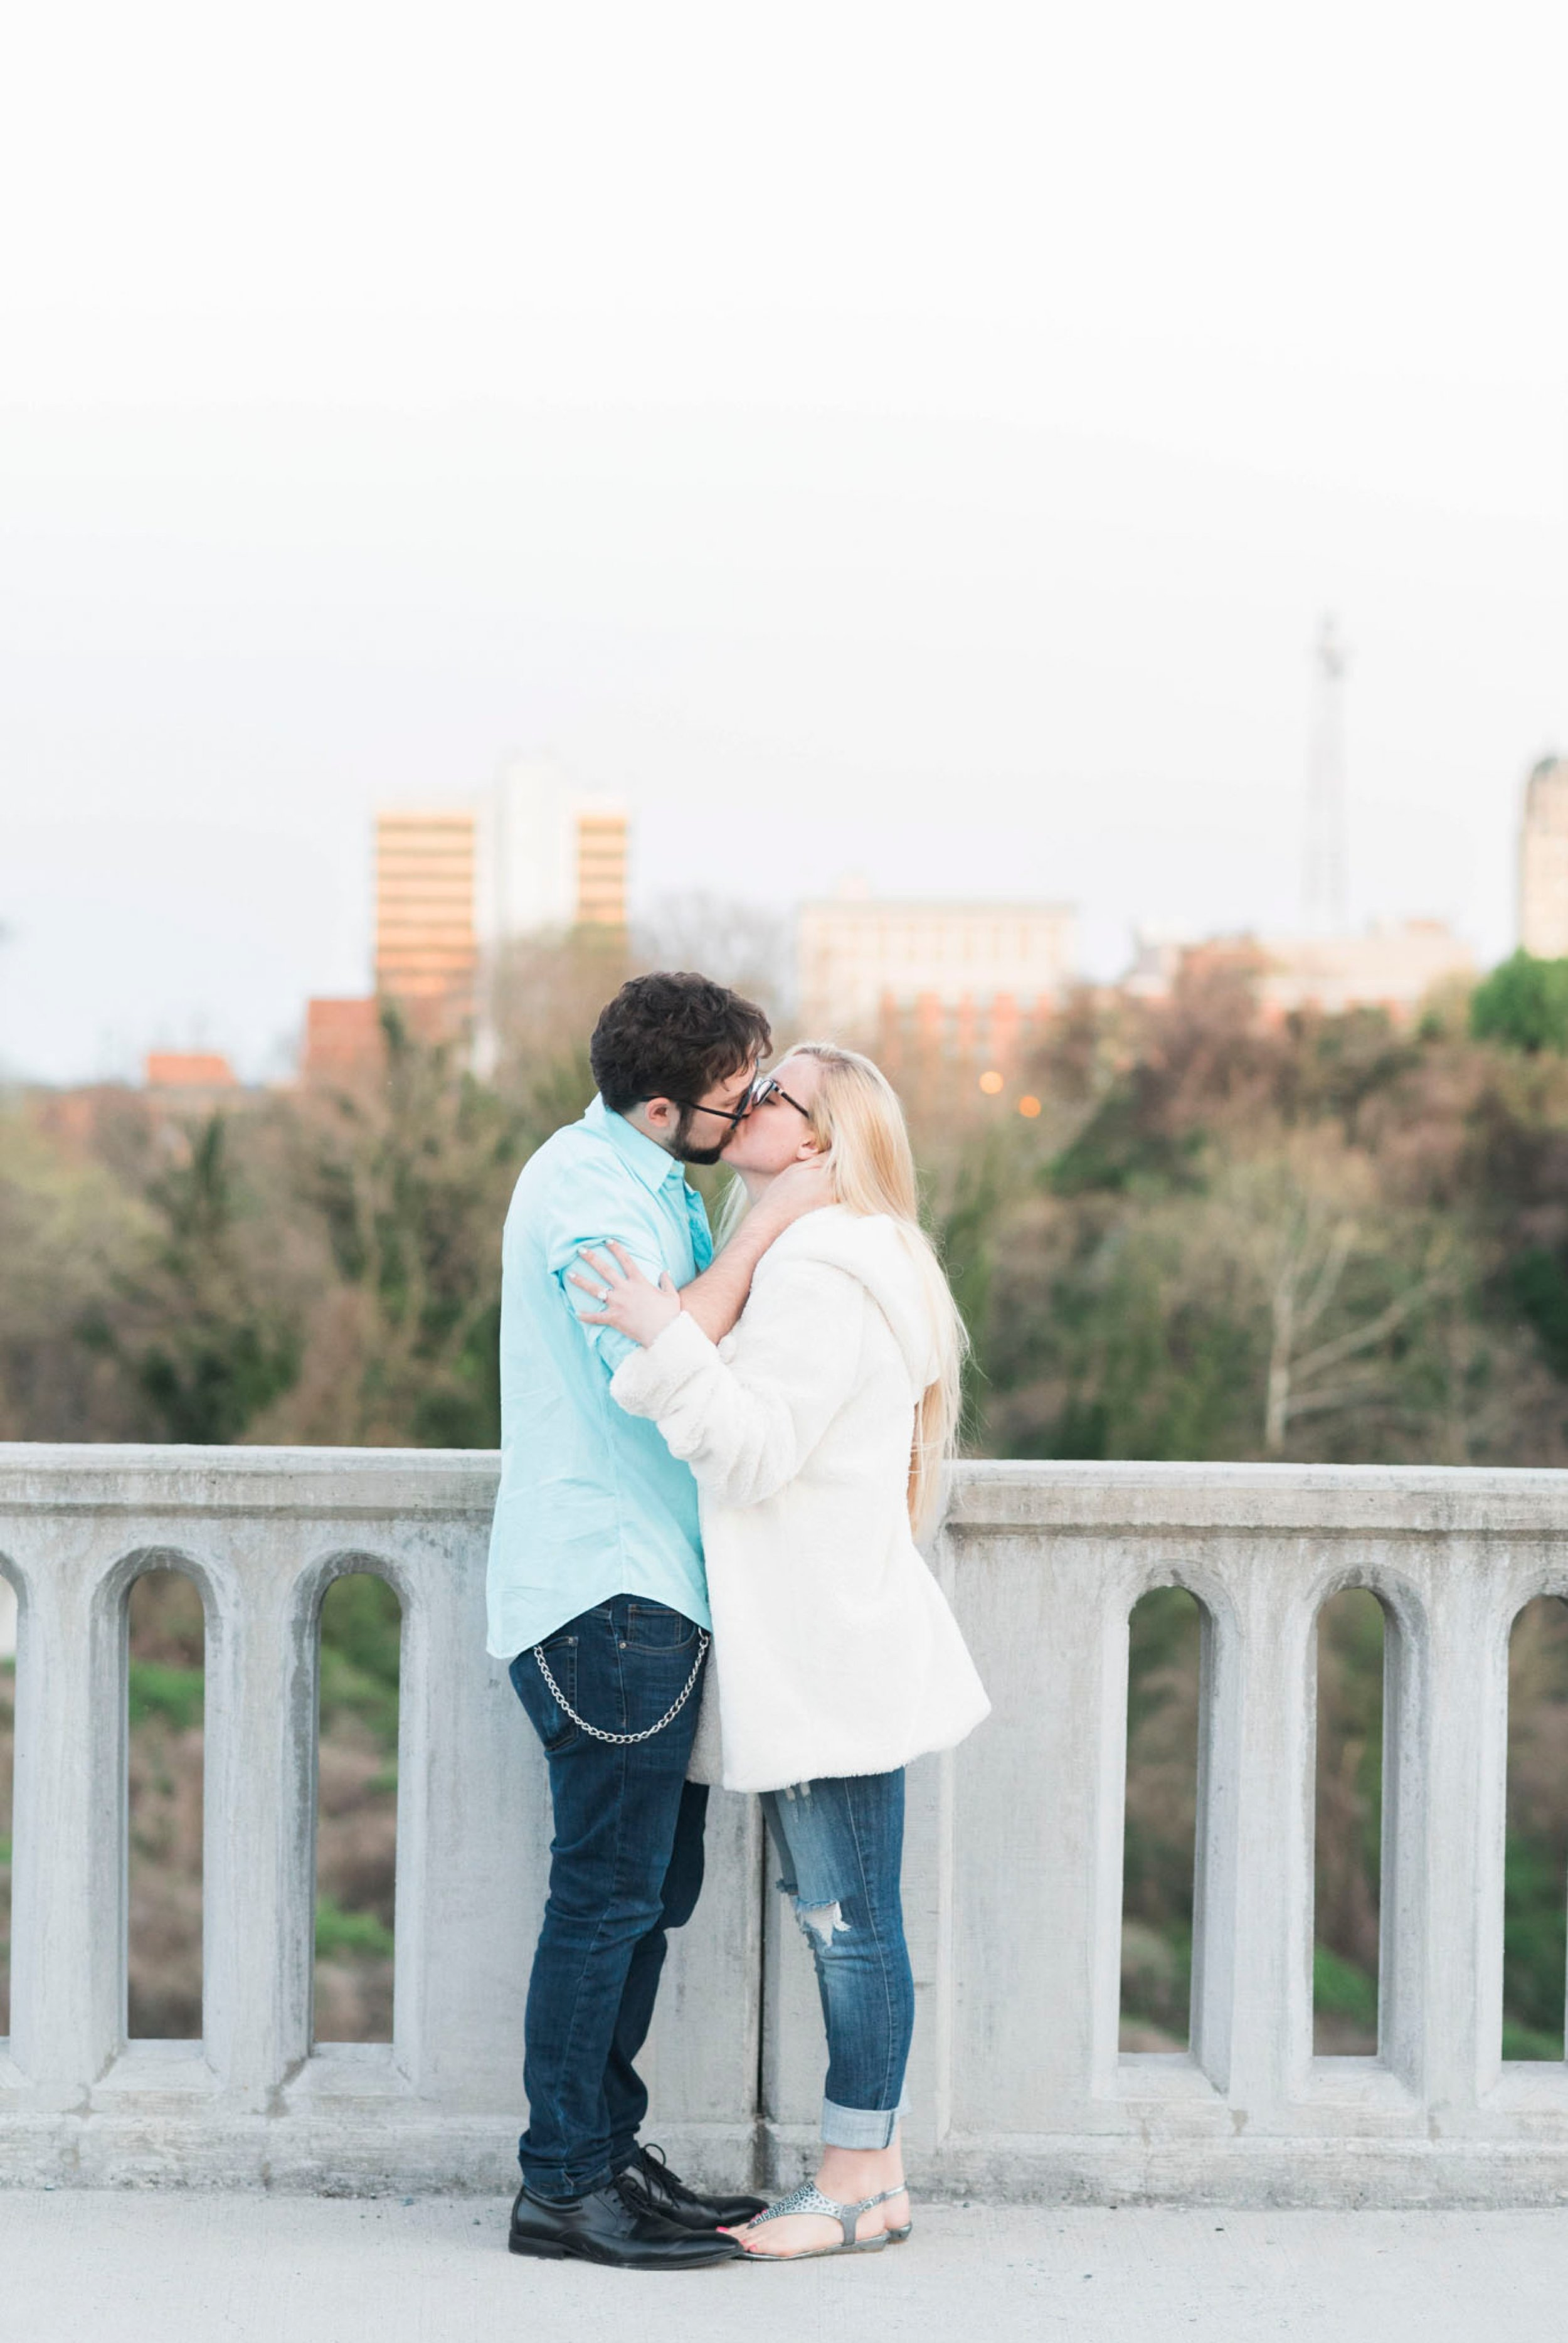 LaunceTarah_VirginiaWeddingPhotographer_EngagementSession_LynchburgVA_DowntownLynchburg_SpringEngagement 32.jpg